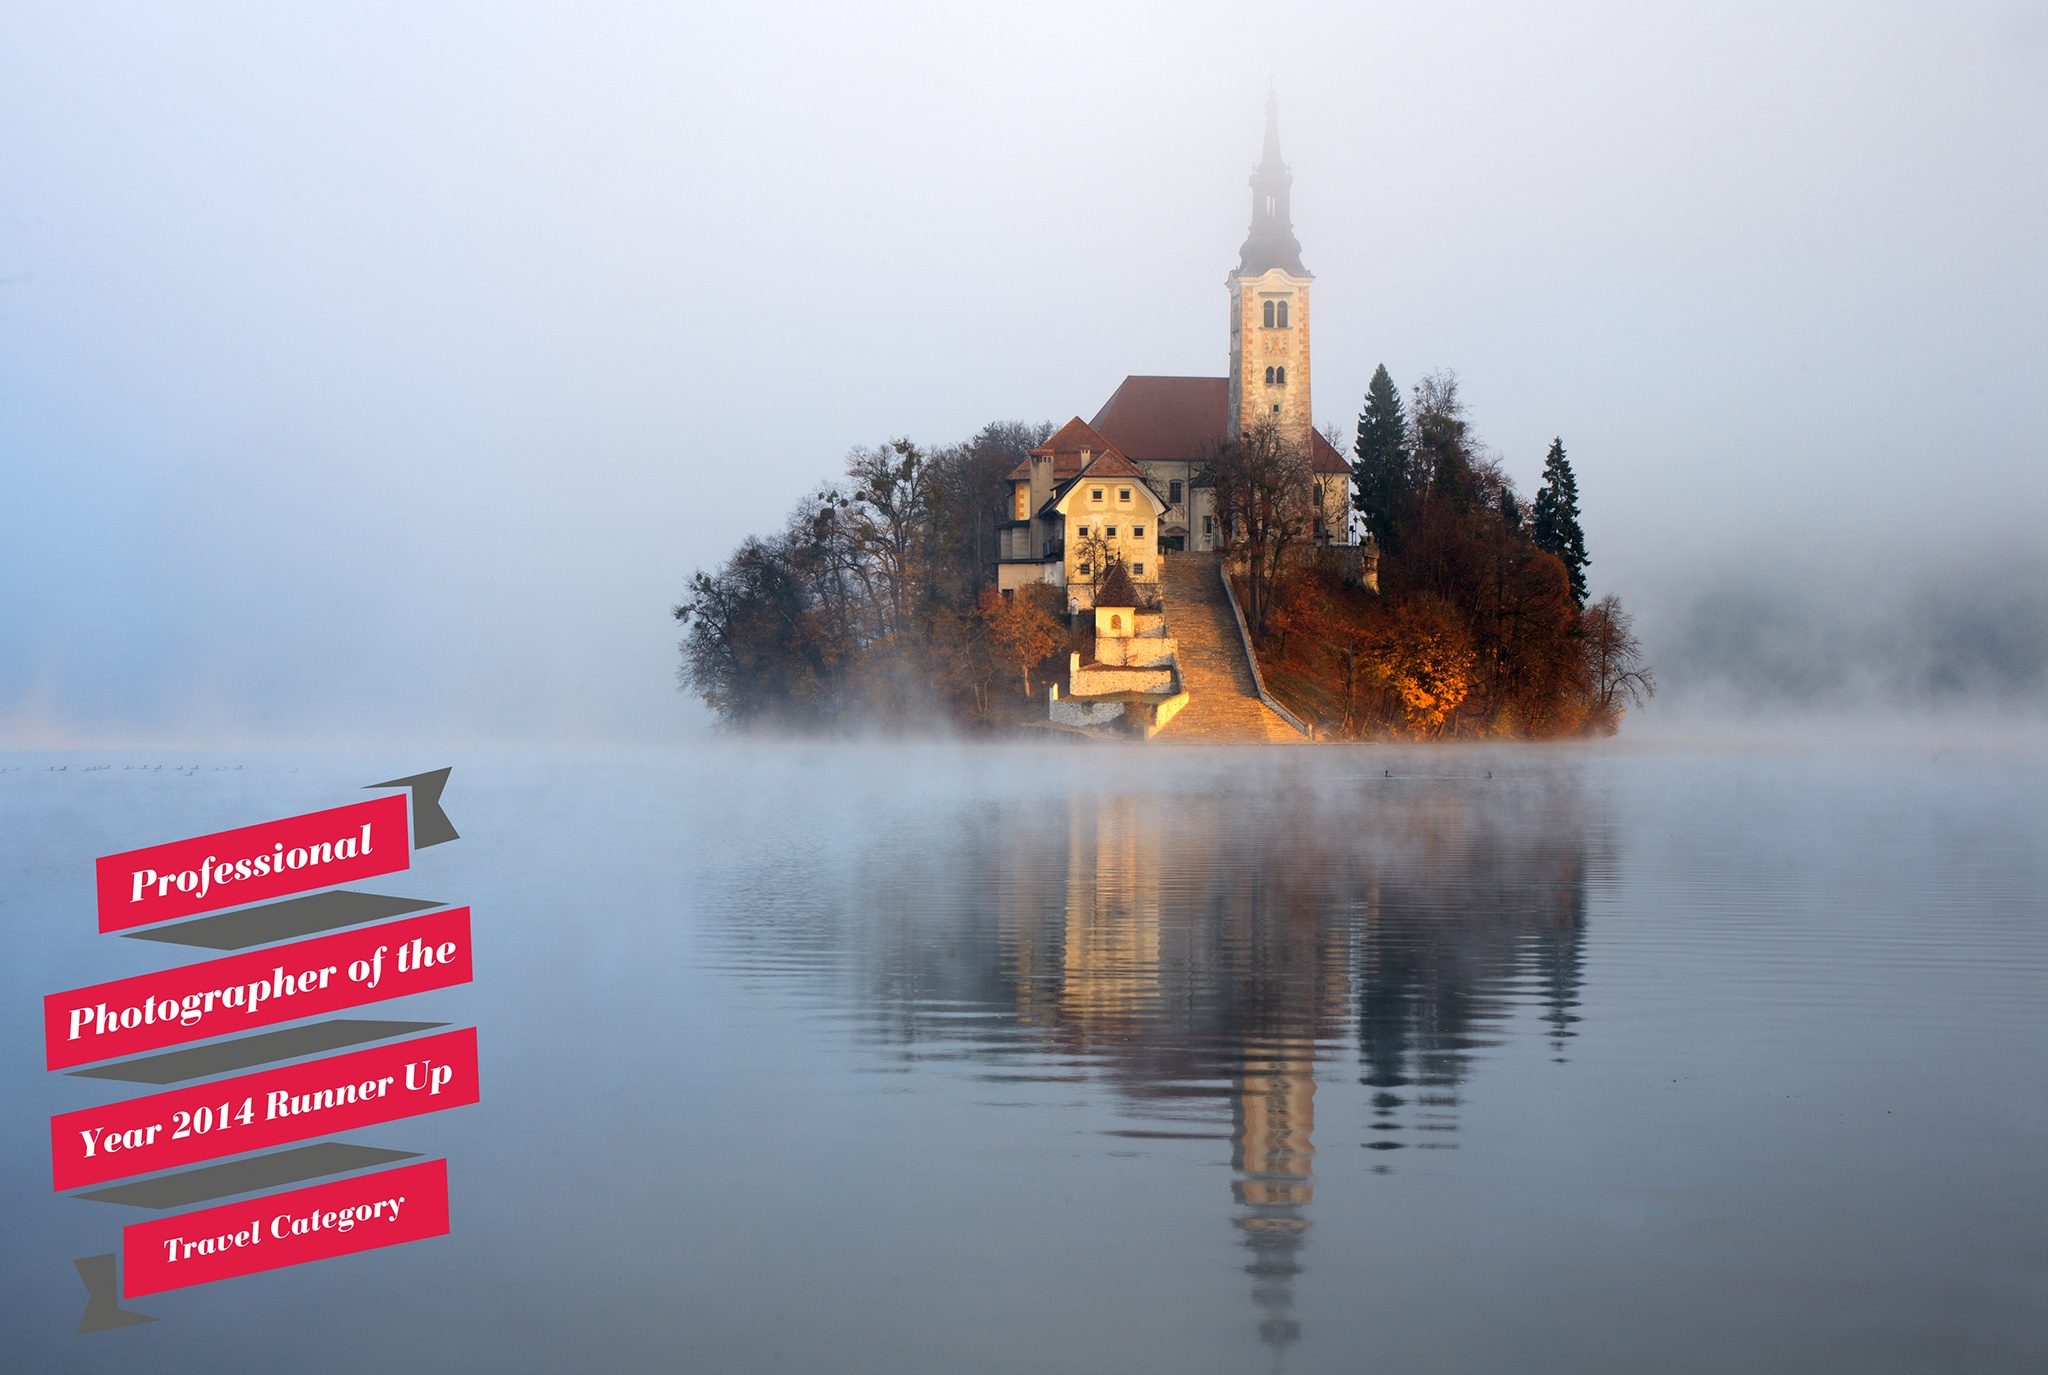 The famous Island church emerging as the morning sun breaks through an icy mist over Lake Bled. 3rd place in the Professional Photographer of year 2014 competition.